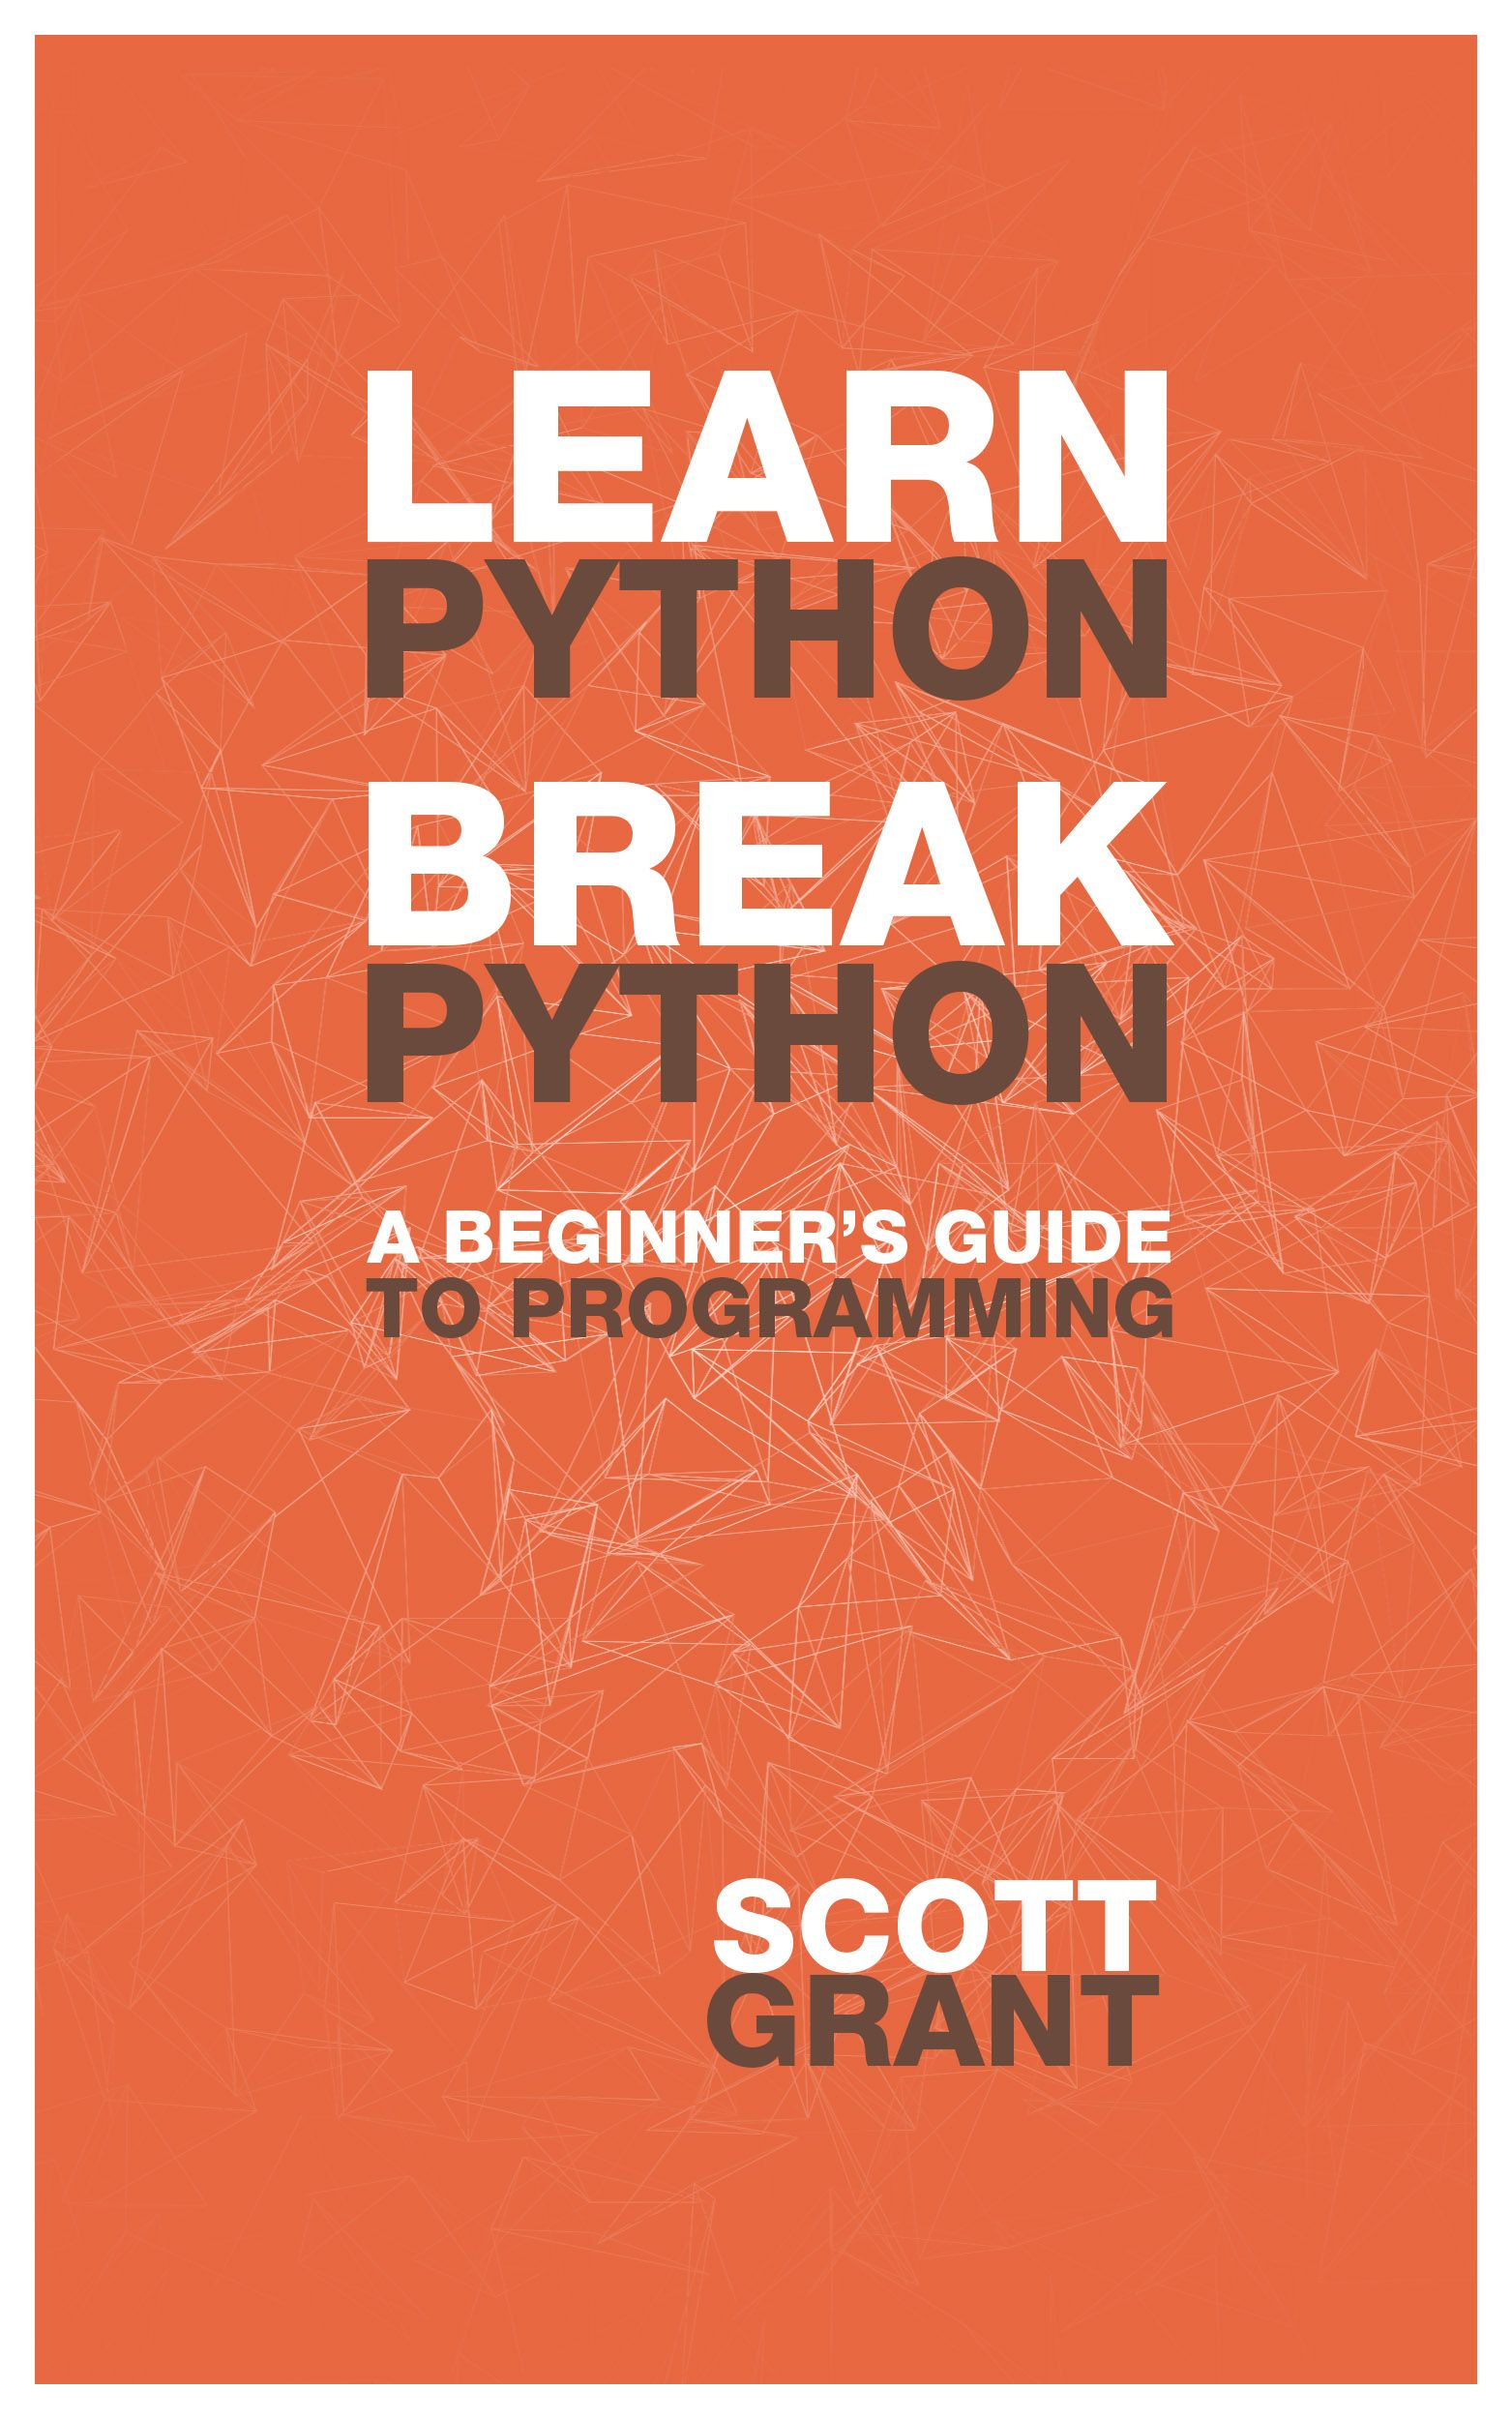 Learn Python Break Python A Beginner S Guide To Programming By Breaking Stuff Books Python Computer Programming Computer Knowledge